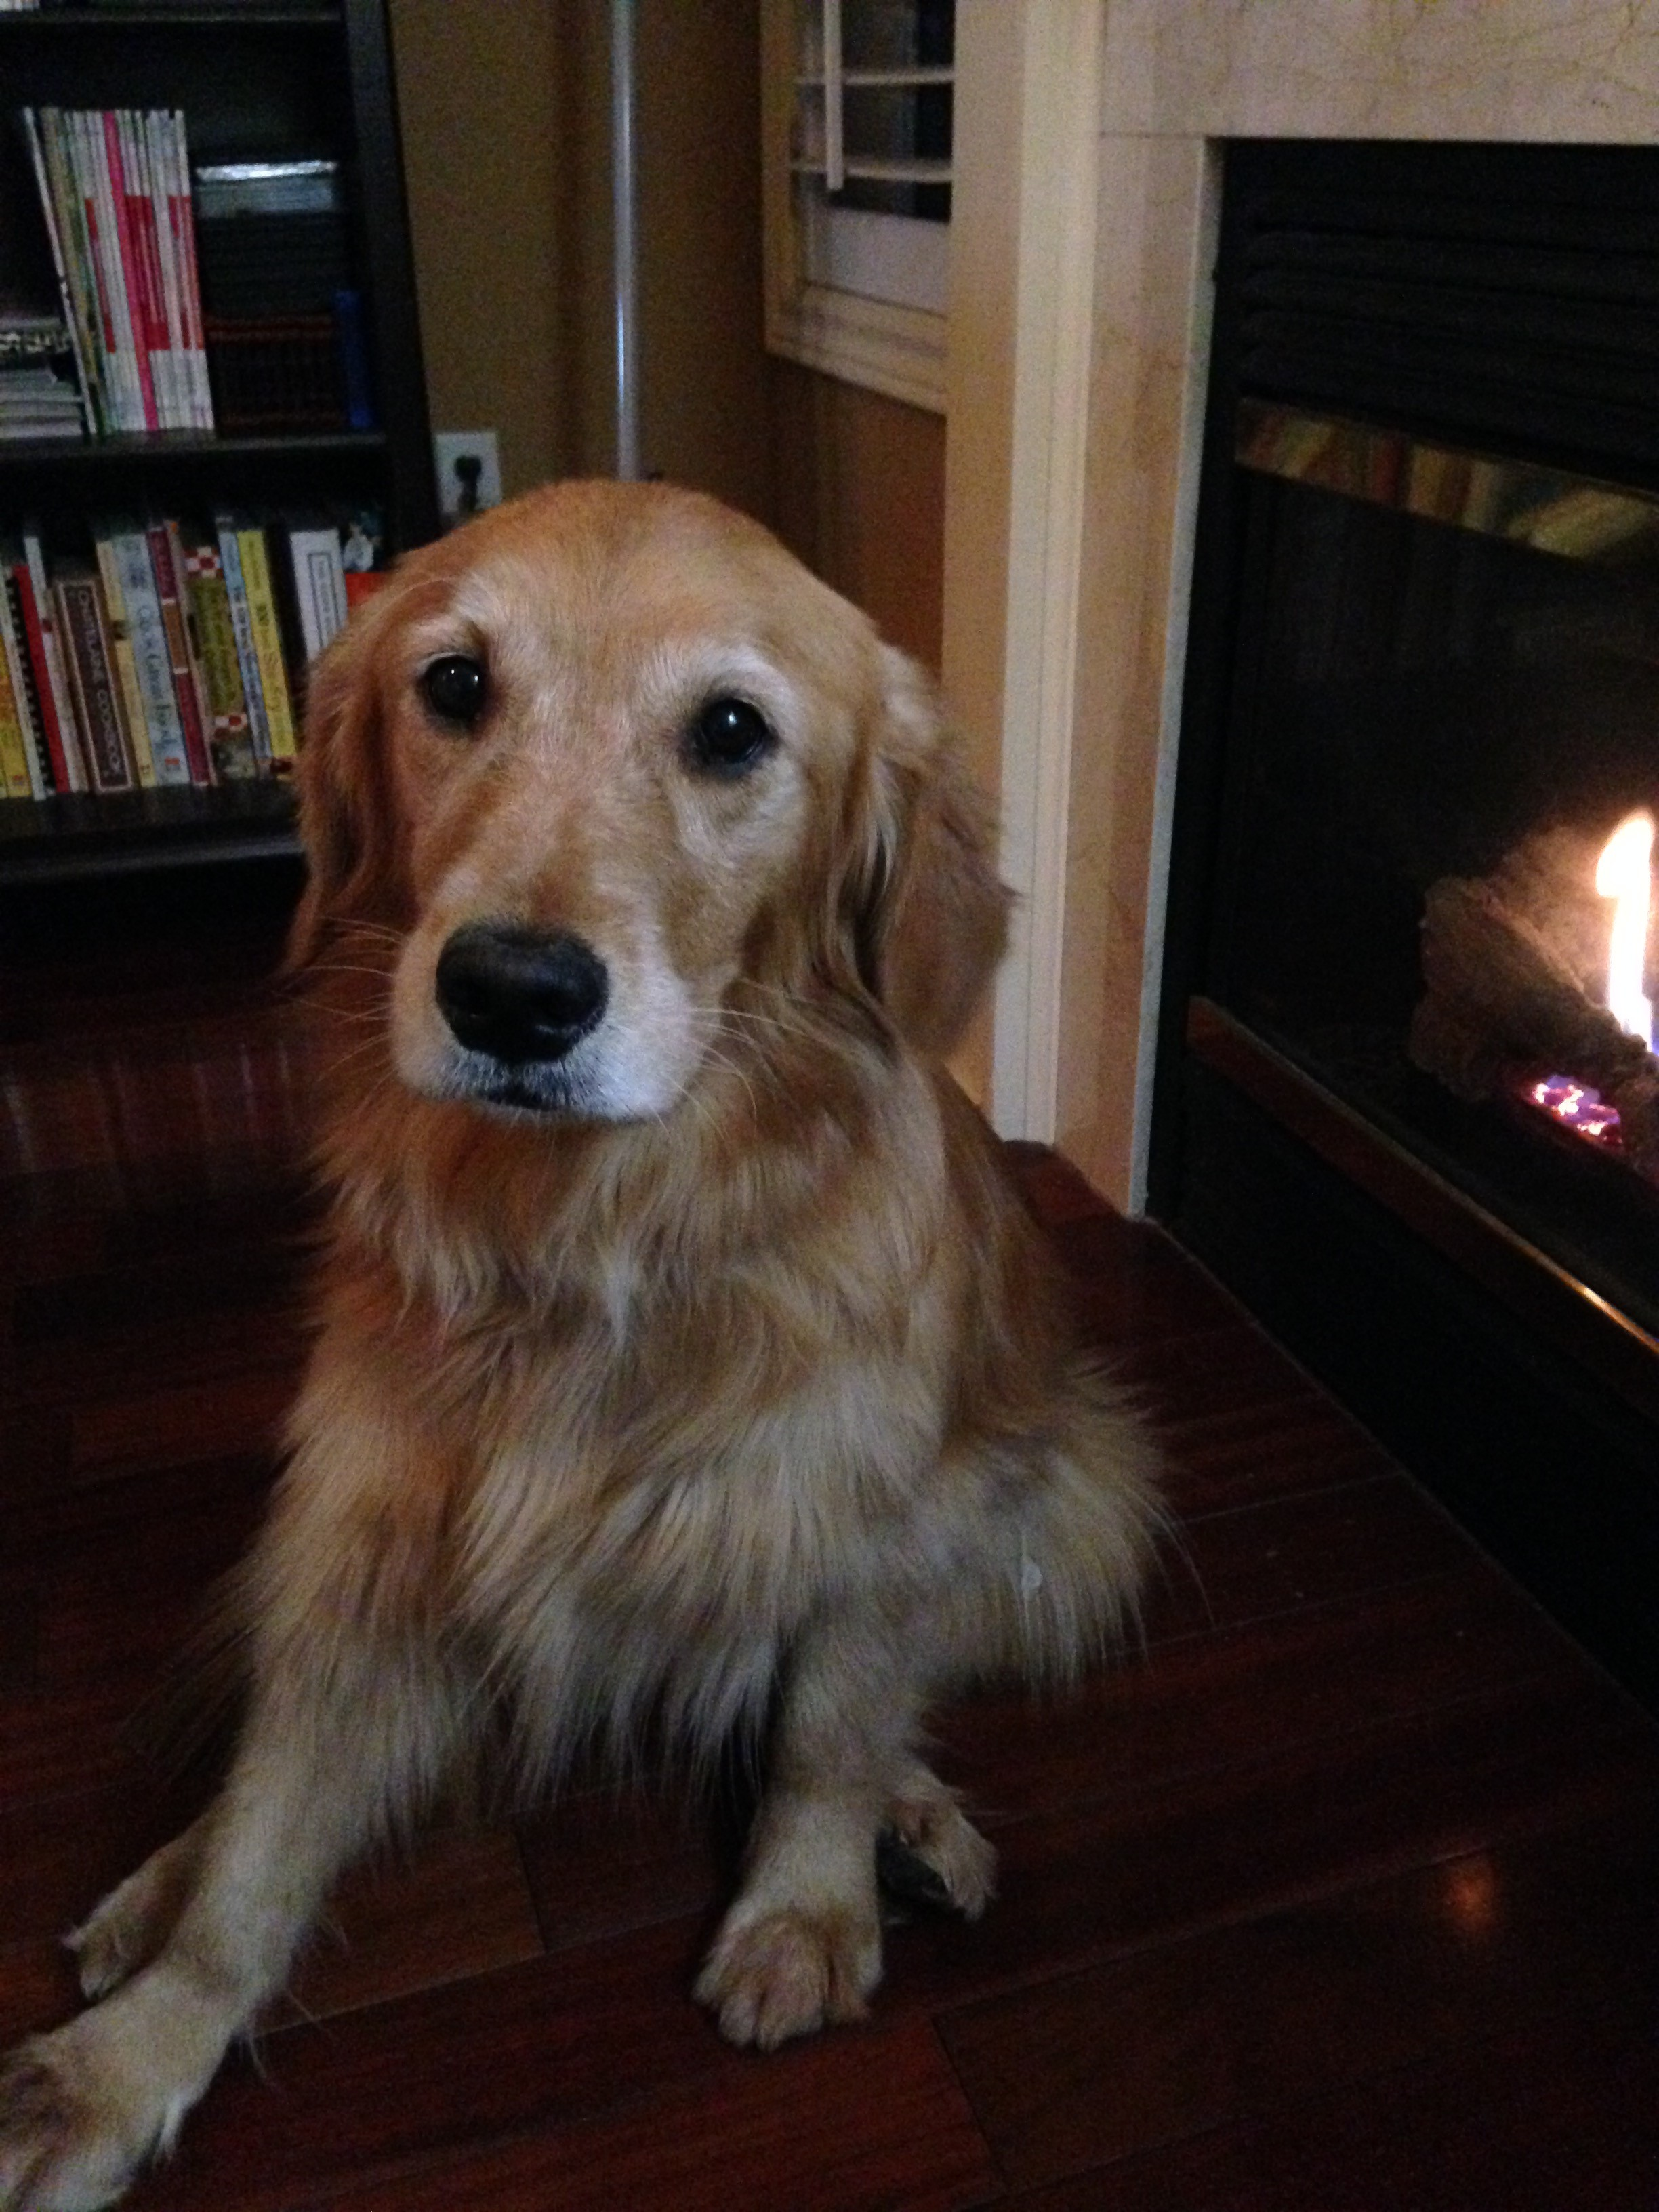 A fireplace and a dog. Perfect :)